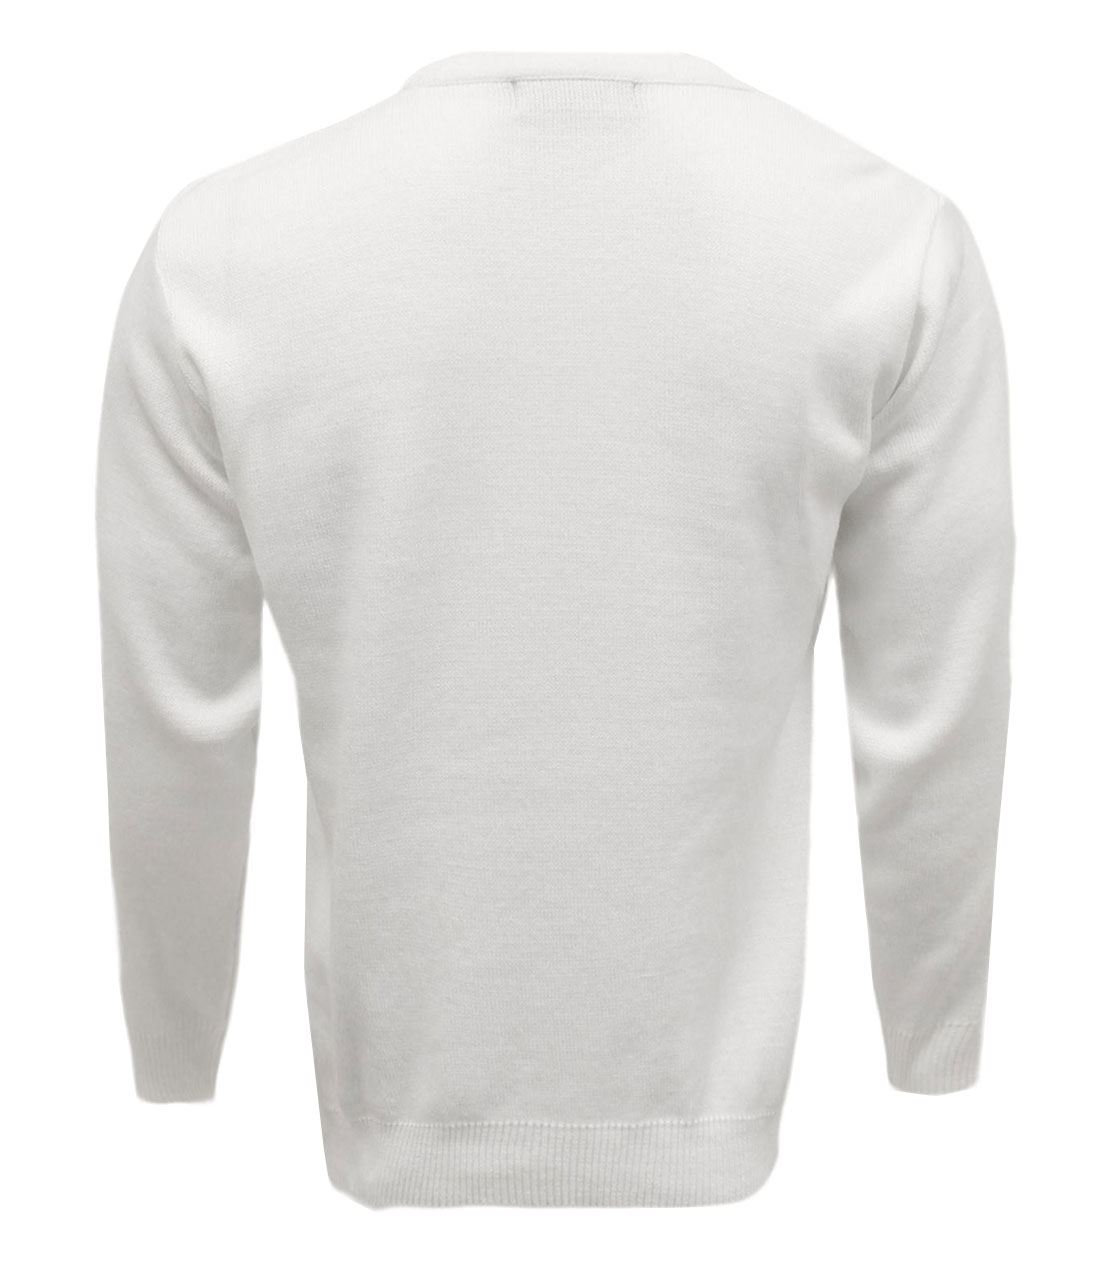 Mens V Neck Knitted Bowling 10G Jumper Top Adult Long Sleeves Winter Sweater Lot